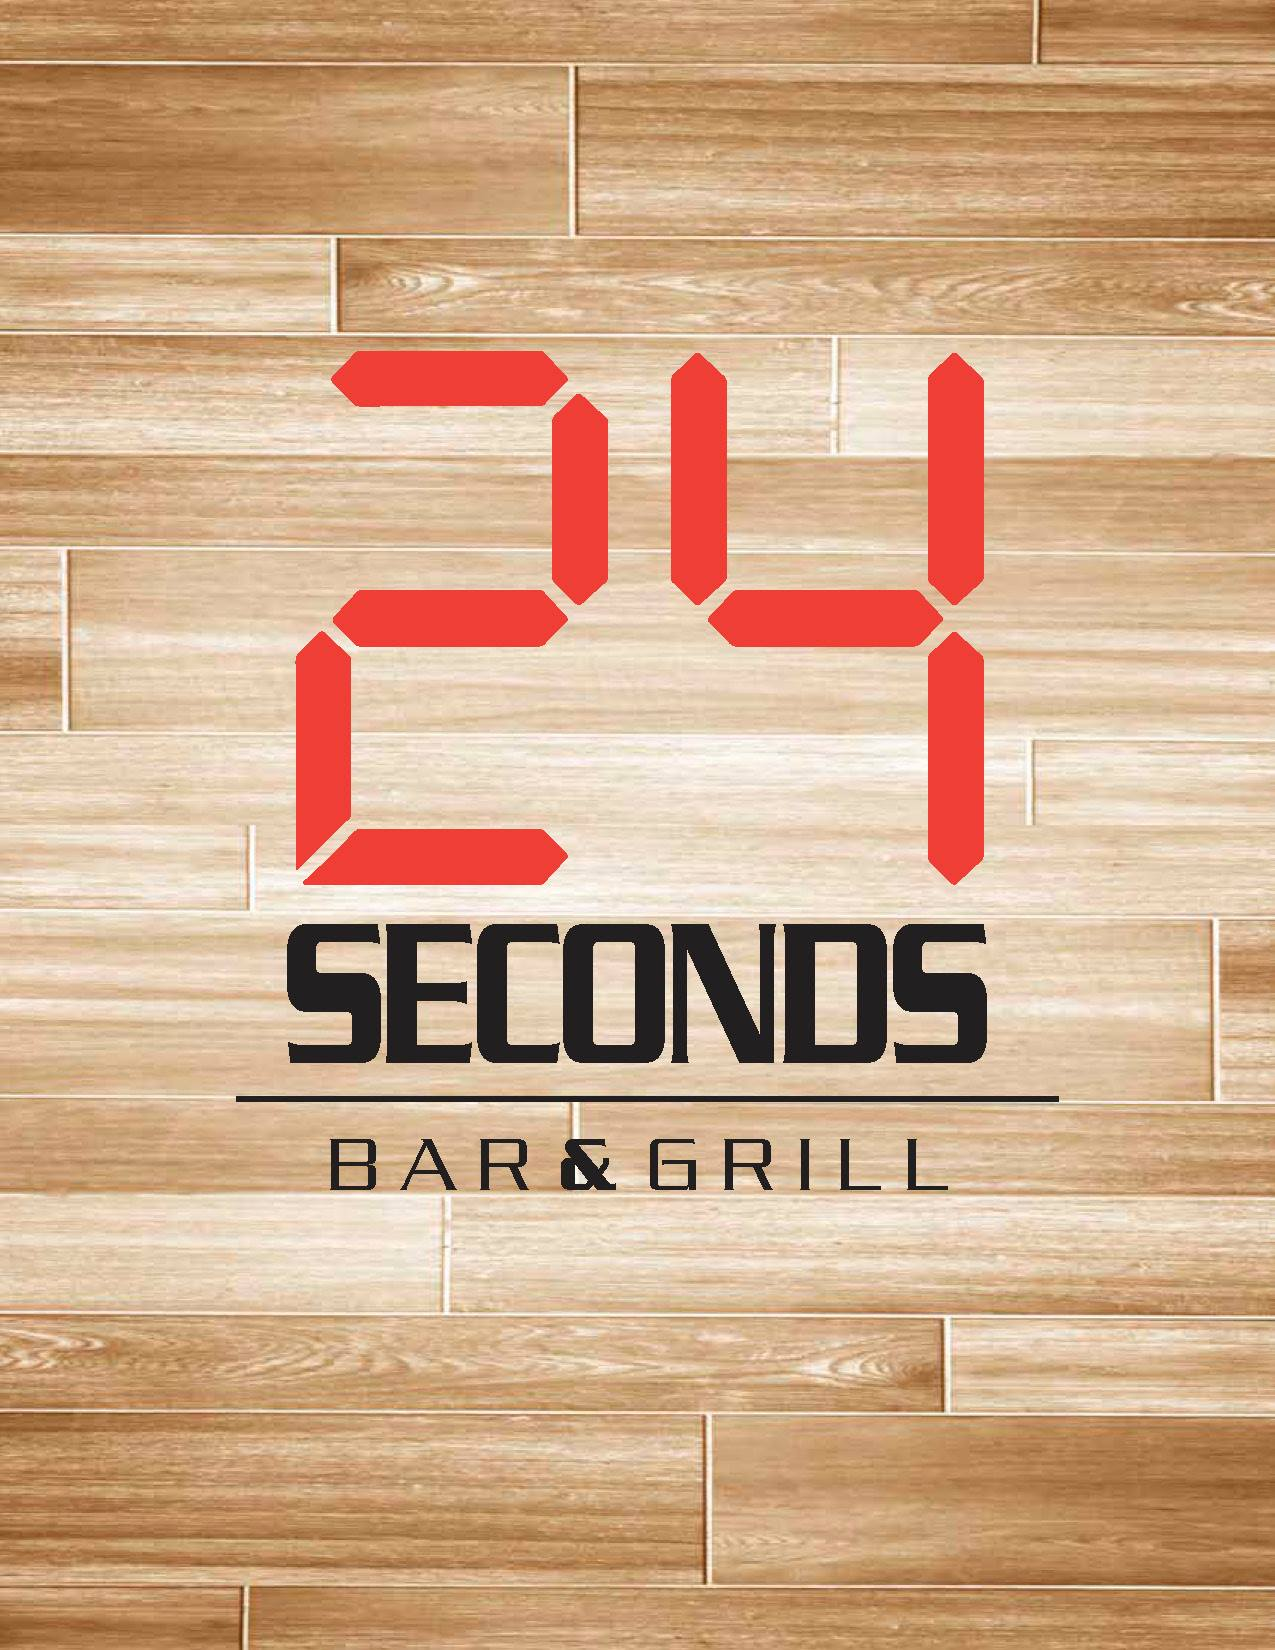 A great sports bar with rooftop patio located in downtown Berkley, MI.